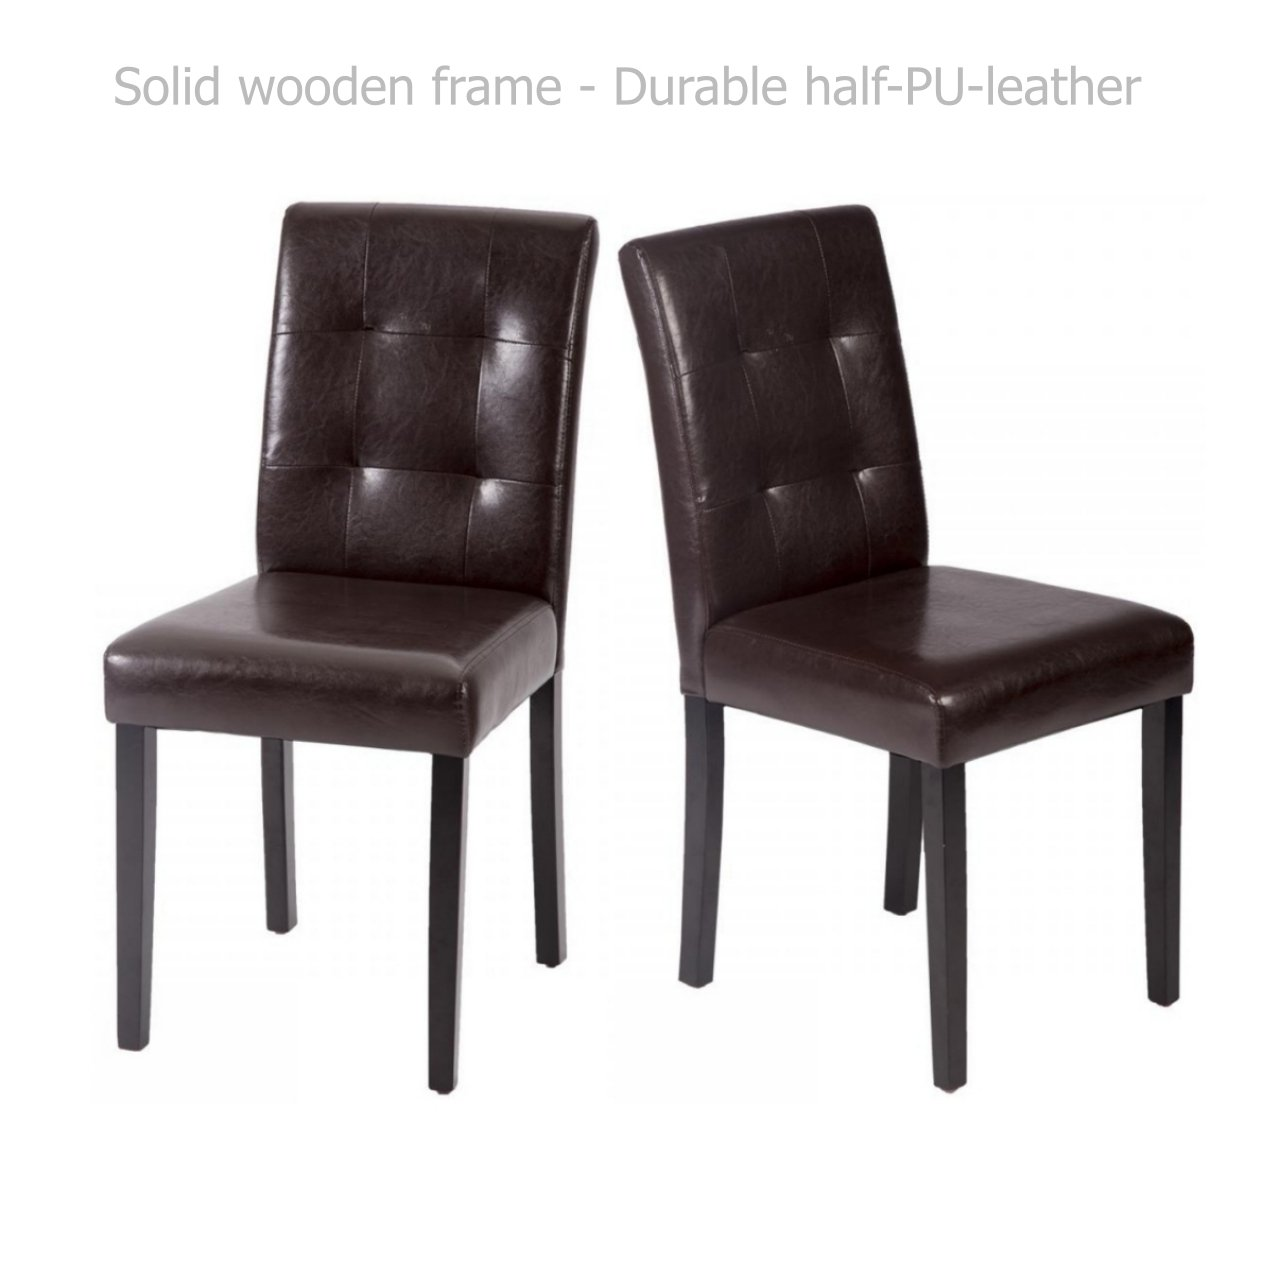 Modern Dining Chairs Sturdy Wooden Frame Tufted Backrest Design Half PU Leather Seats Home Office Furniture Decor - Set of 2 Brown #1550